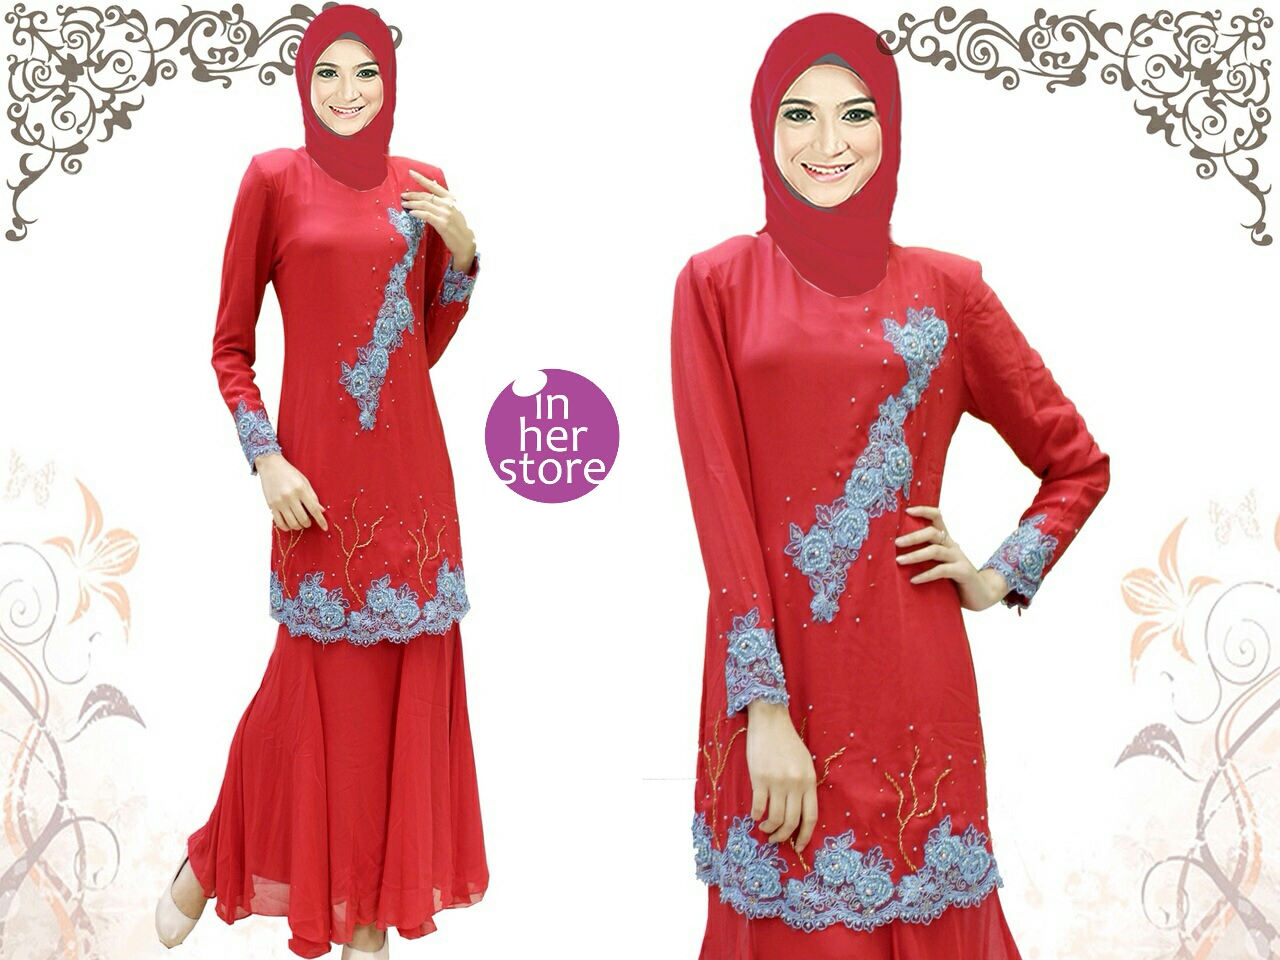 Katalog February  Baju Kurung Malaysia By Inherstore Warrohmah Series Inherstore